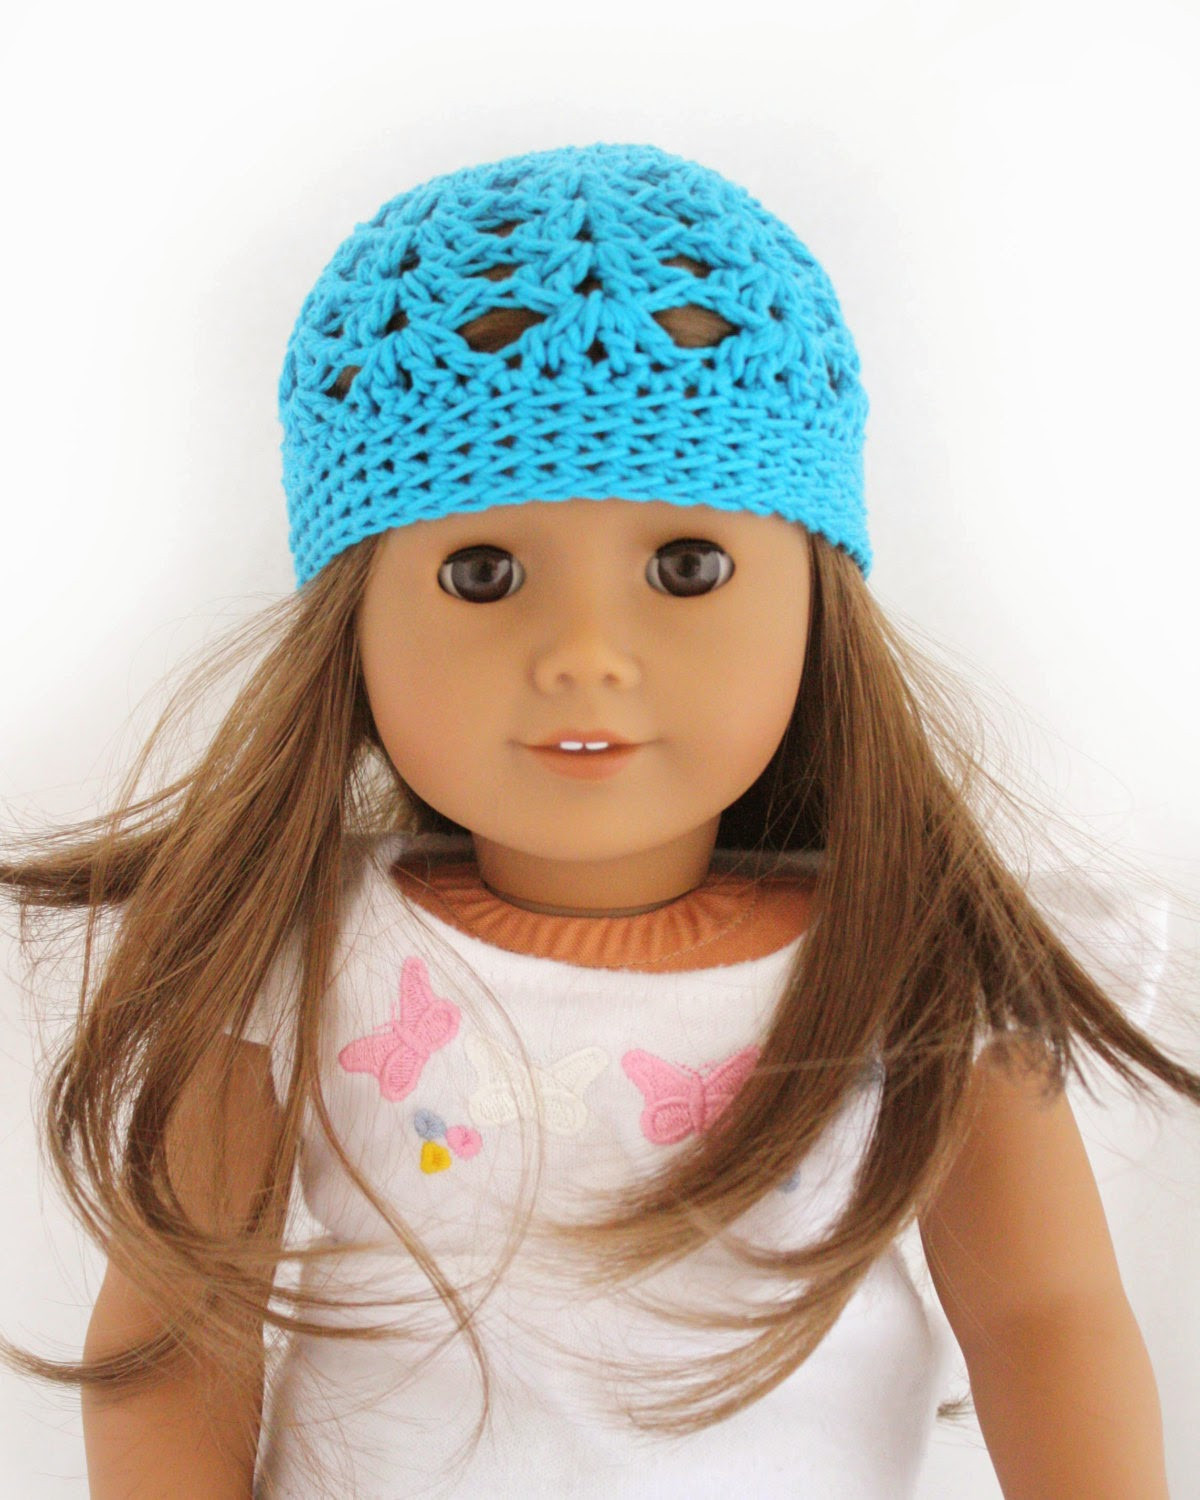 Crochet Girl Hat New Tutorial American Girl Crochet Hat Of Superb 47 Pics Crochet Girl Hat